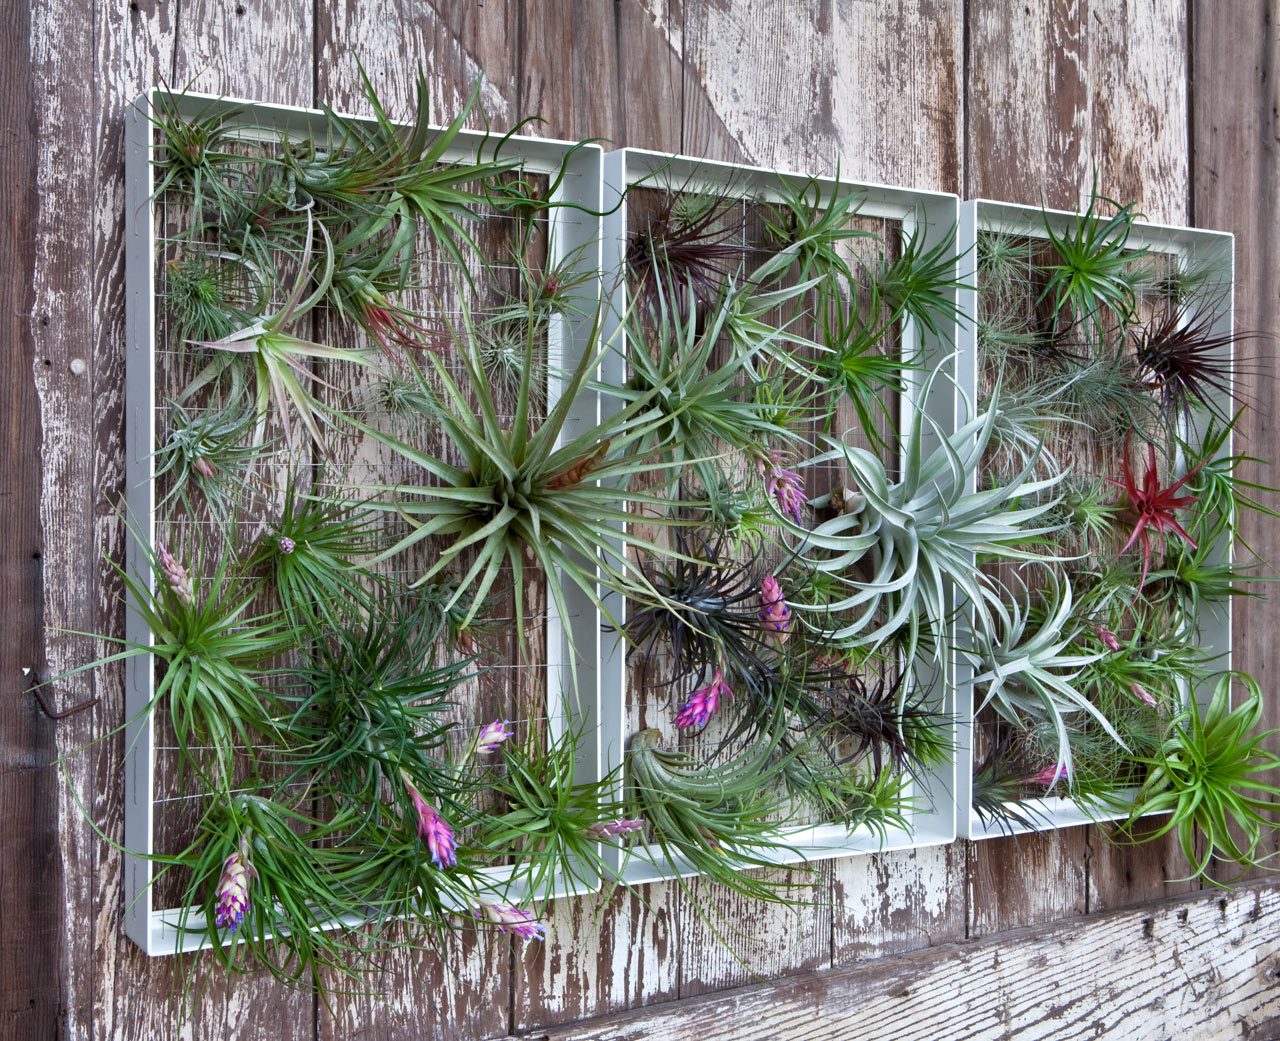 Living Wall Art Vertical Garden Frames by Airplantman